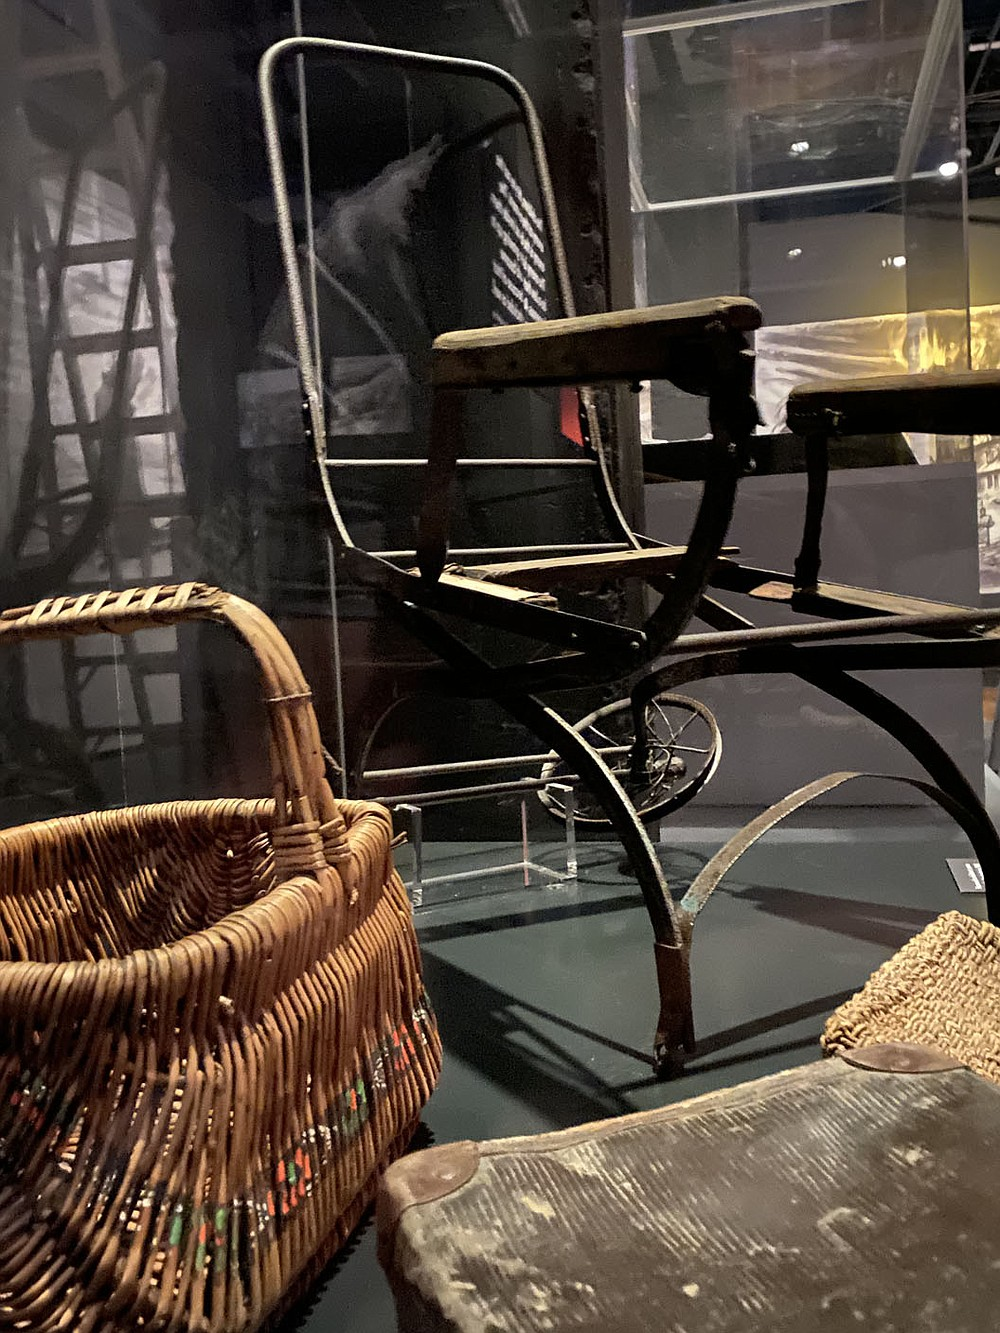 """Some 232,000 children were deported to Auschwitz, 216,000 of them Jewish. Most of the Jewish children were murdered in gas chambers. In the touring exhibition now on show in Kansas City, you can see a """"push chair"""" (stroller) that belonged to one of them.  (Pawel Sawicki, Auschwitz Memorial)"""